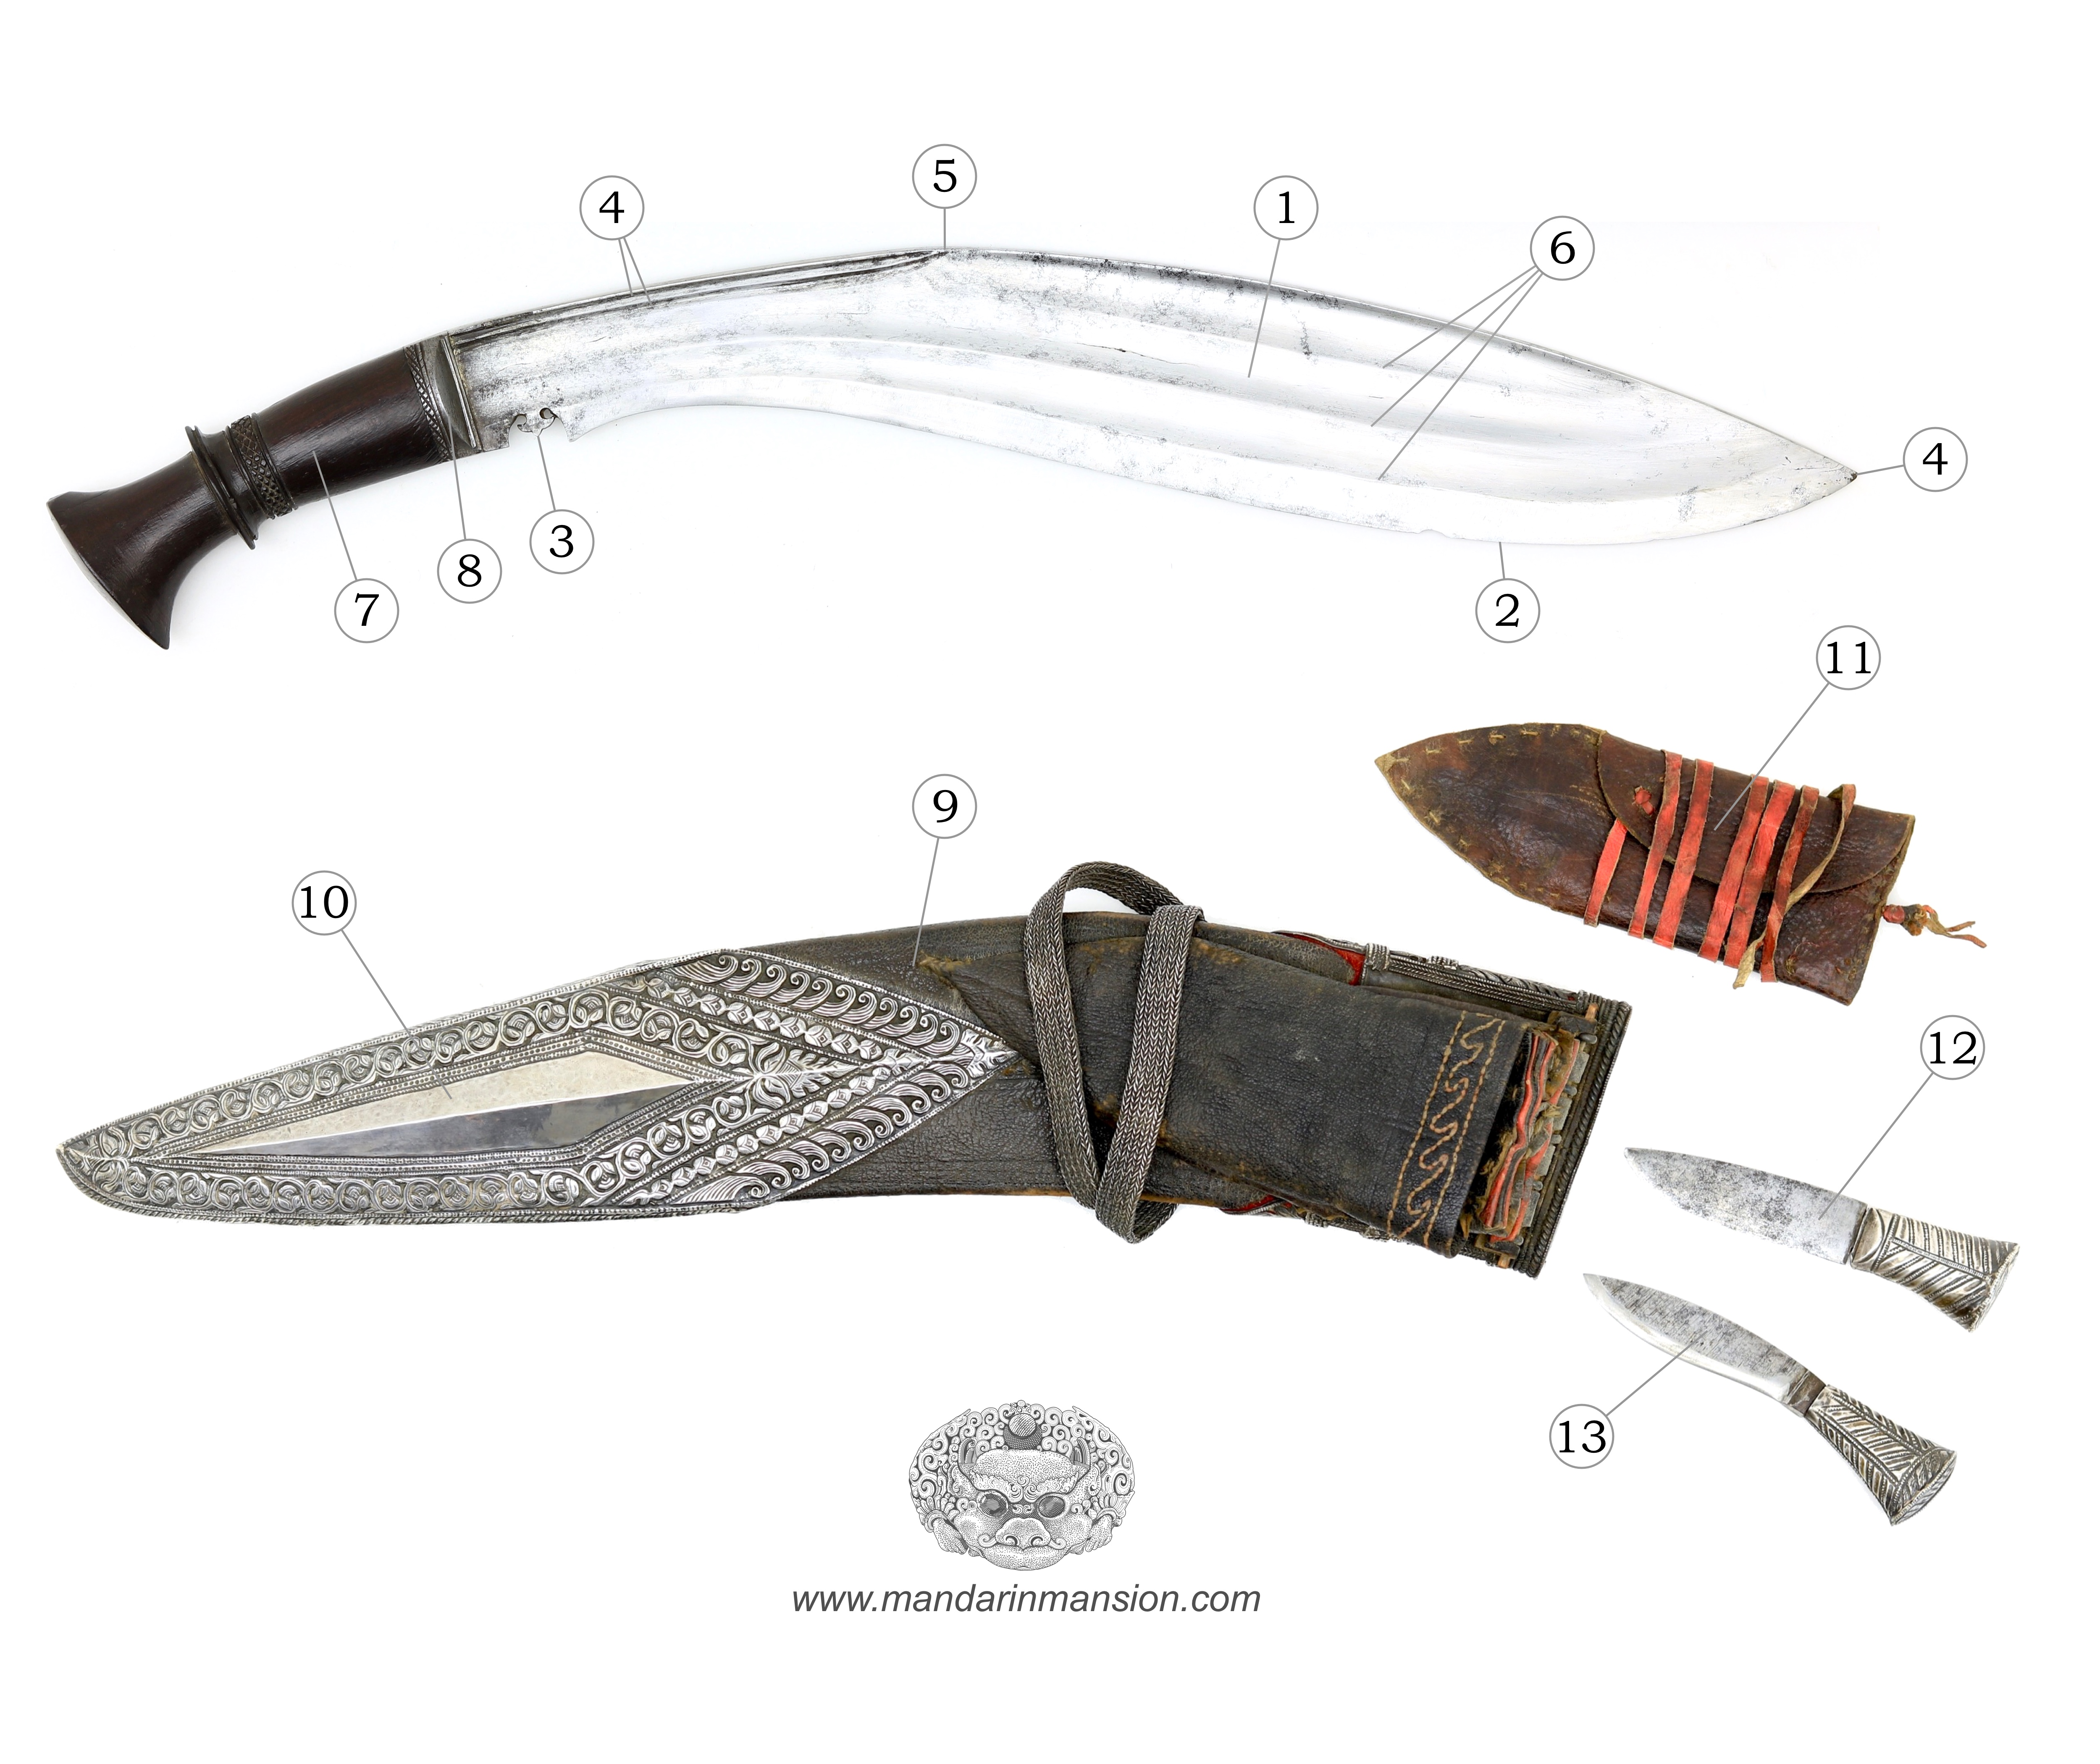 Overview of khukri parts